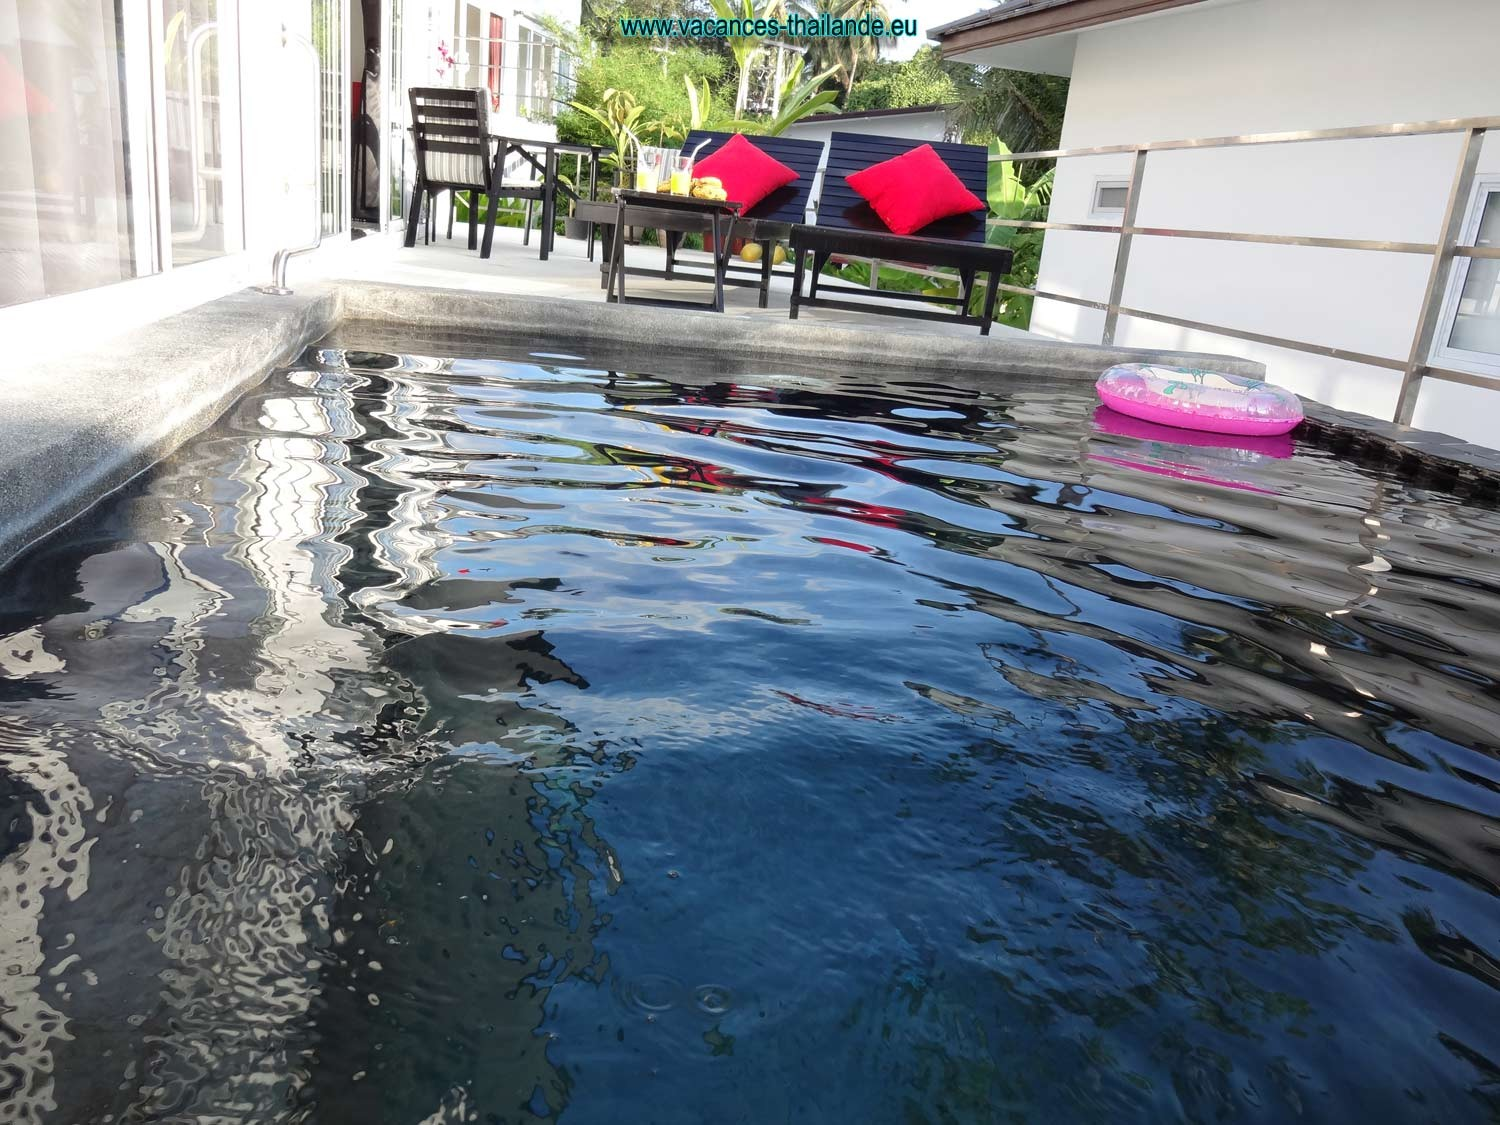 small-pool-of-terrace-rent-villa-koh-samui-thailand-1500